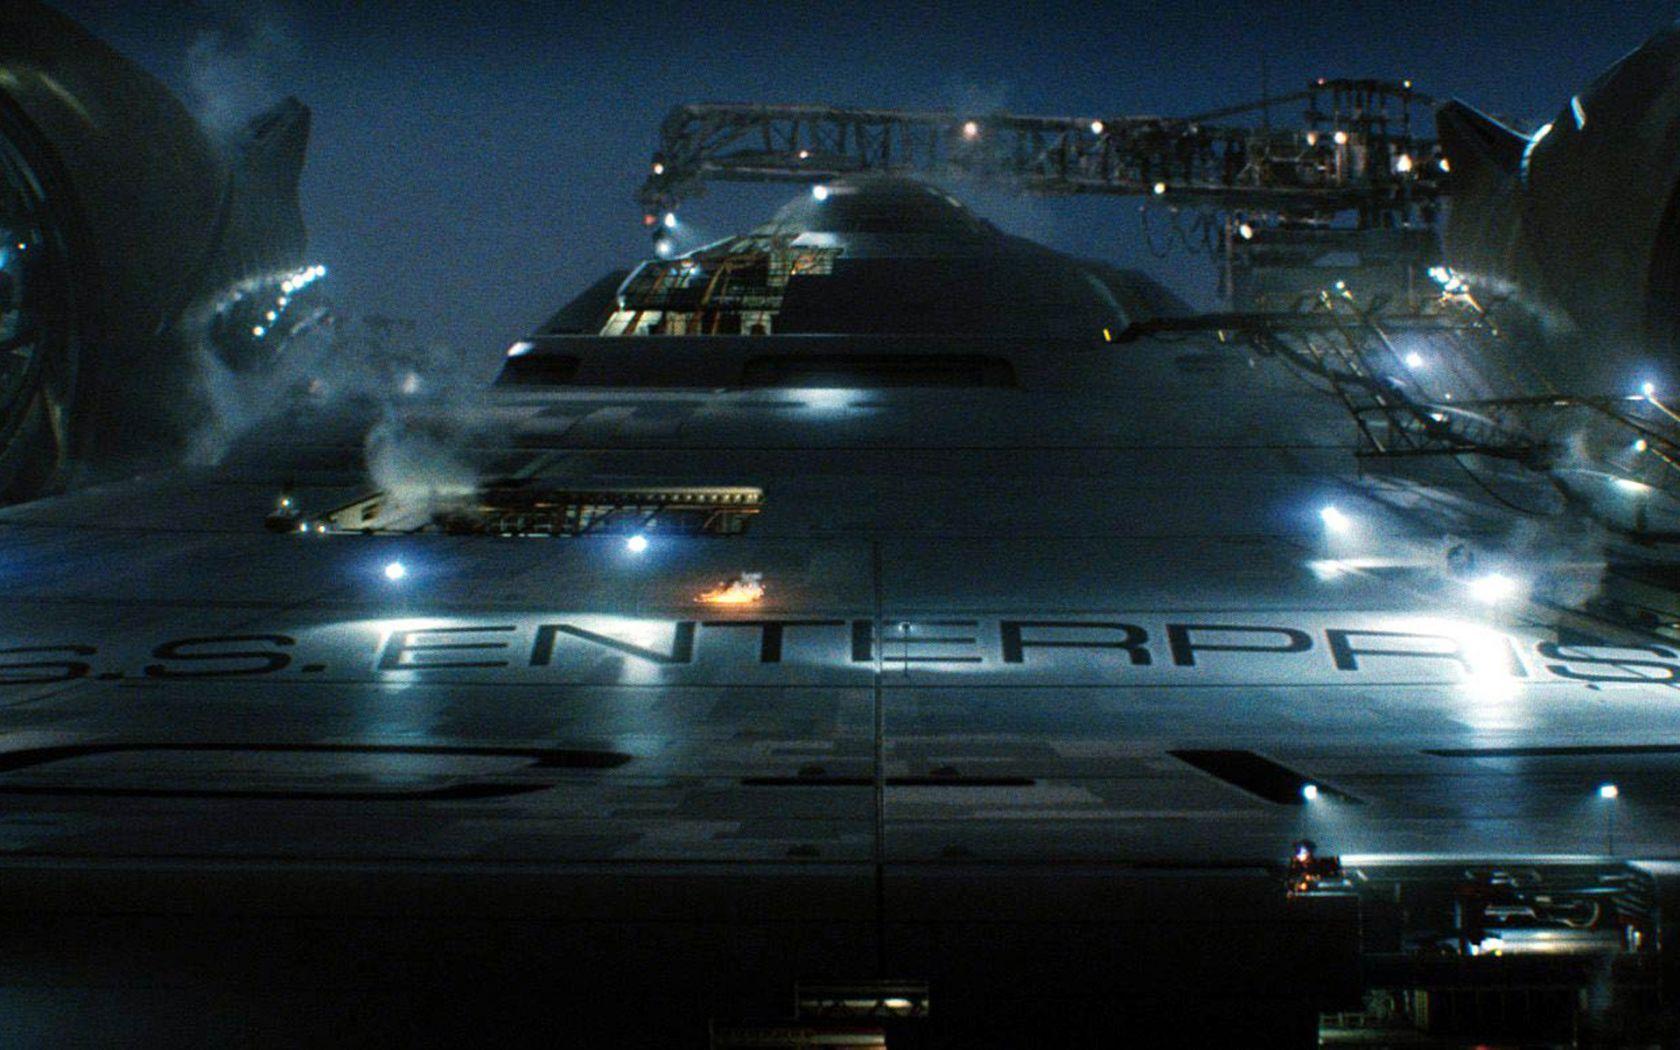 Uss Enterprise Front Close Up Wallpaper 1680x1050